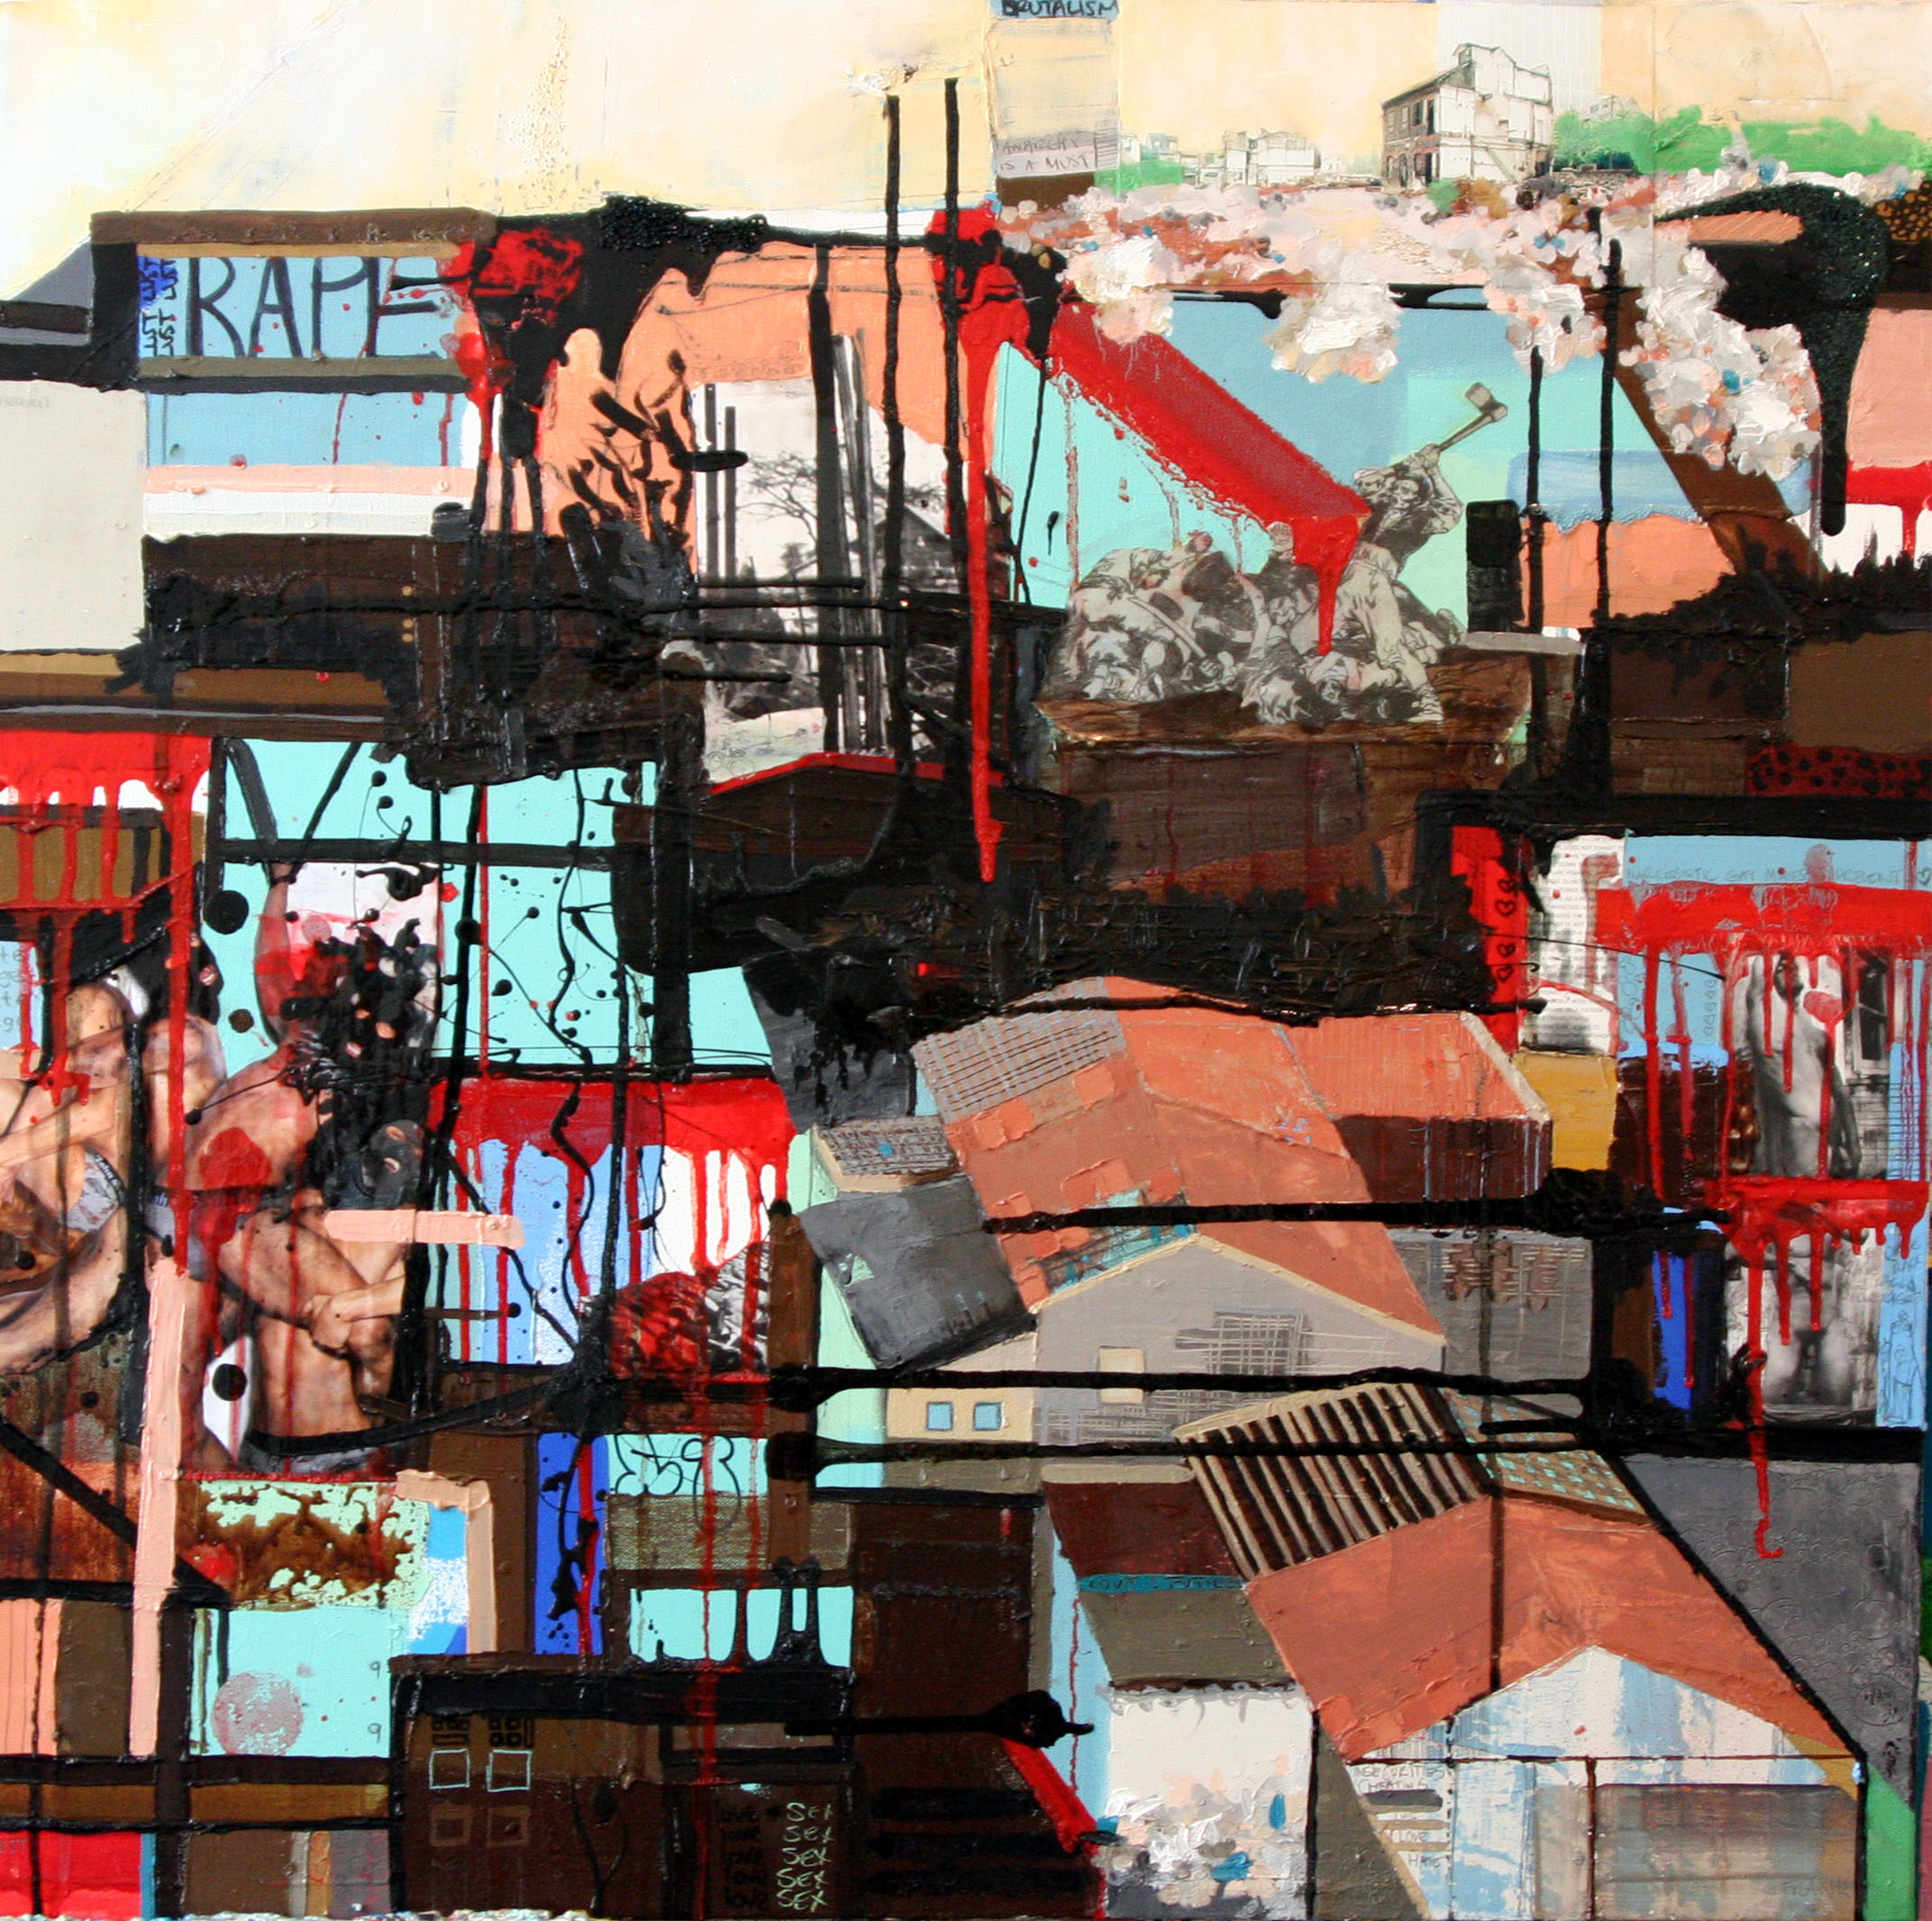 Battle 4 Love (Right Panel), 2007, Oil and Mixed Media on canvas, 30 x 30 inches